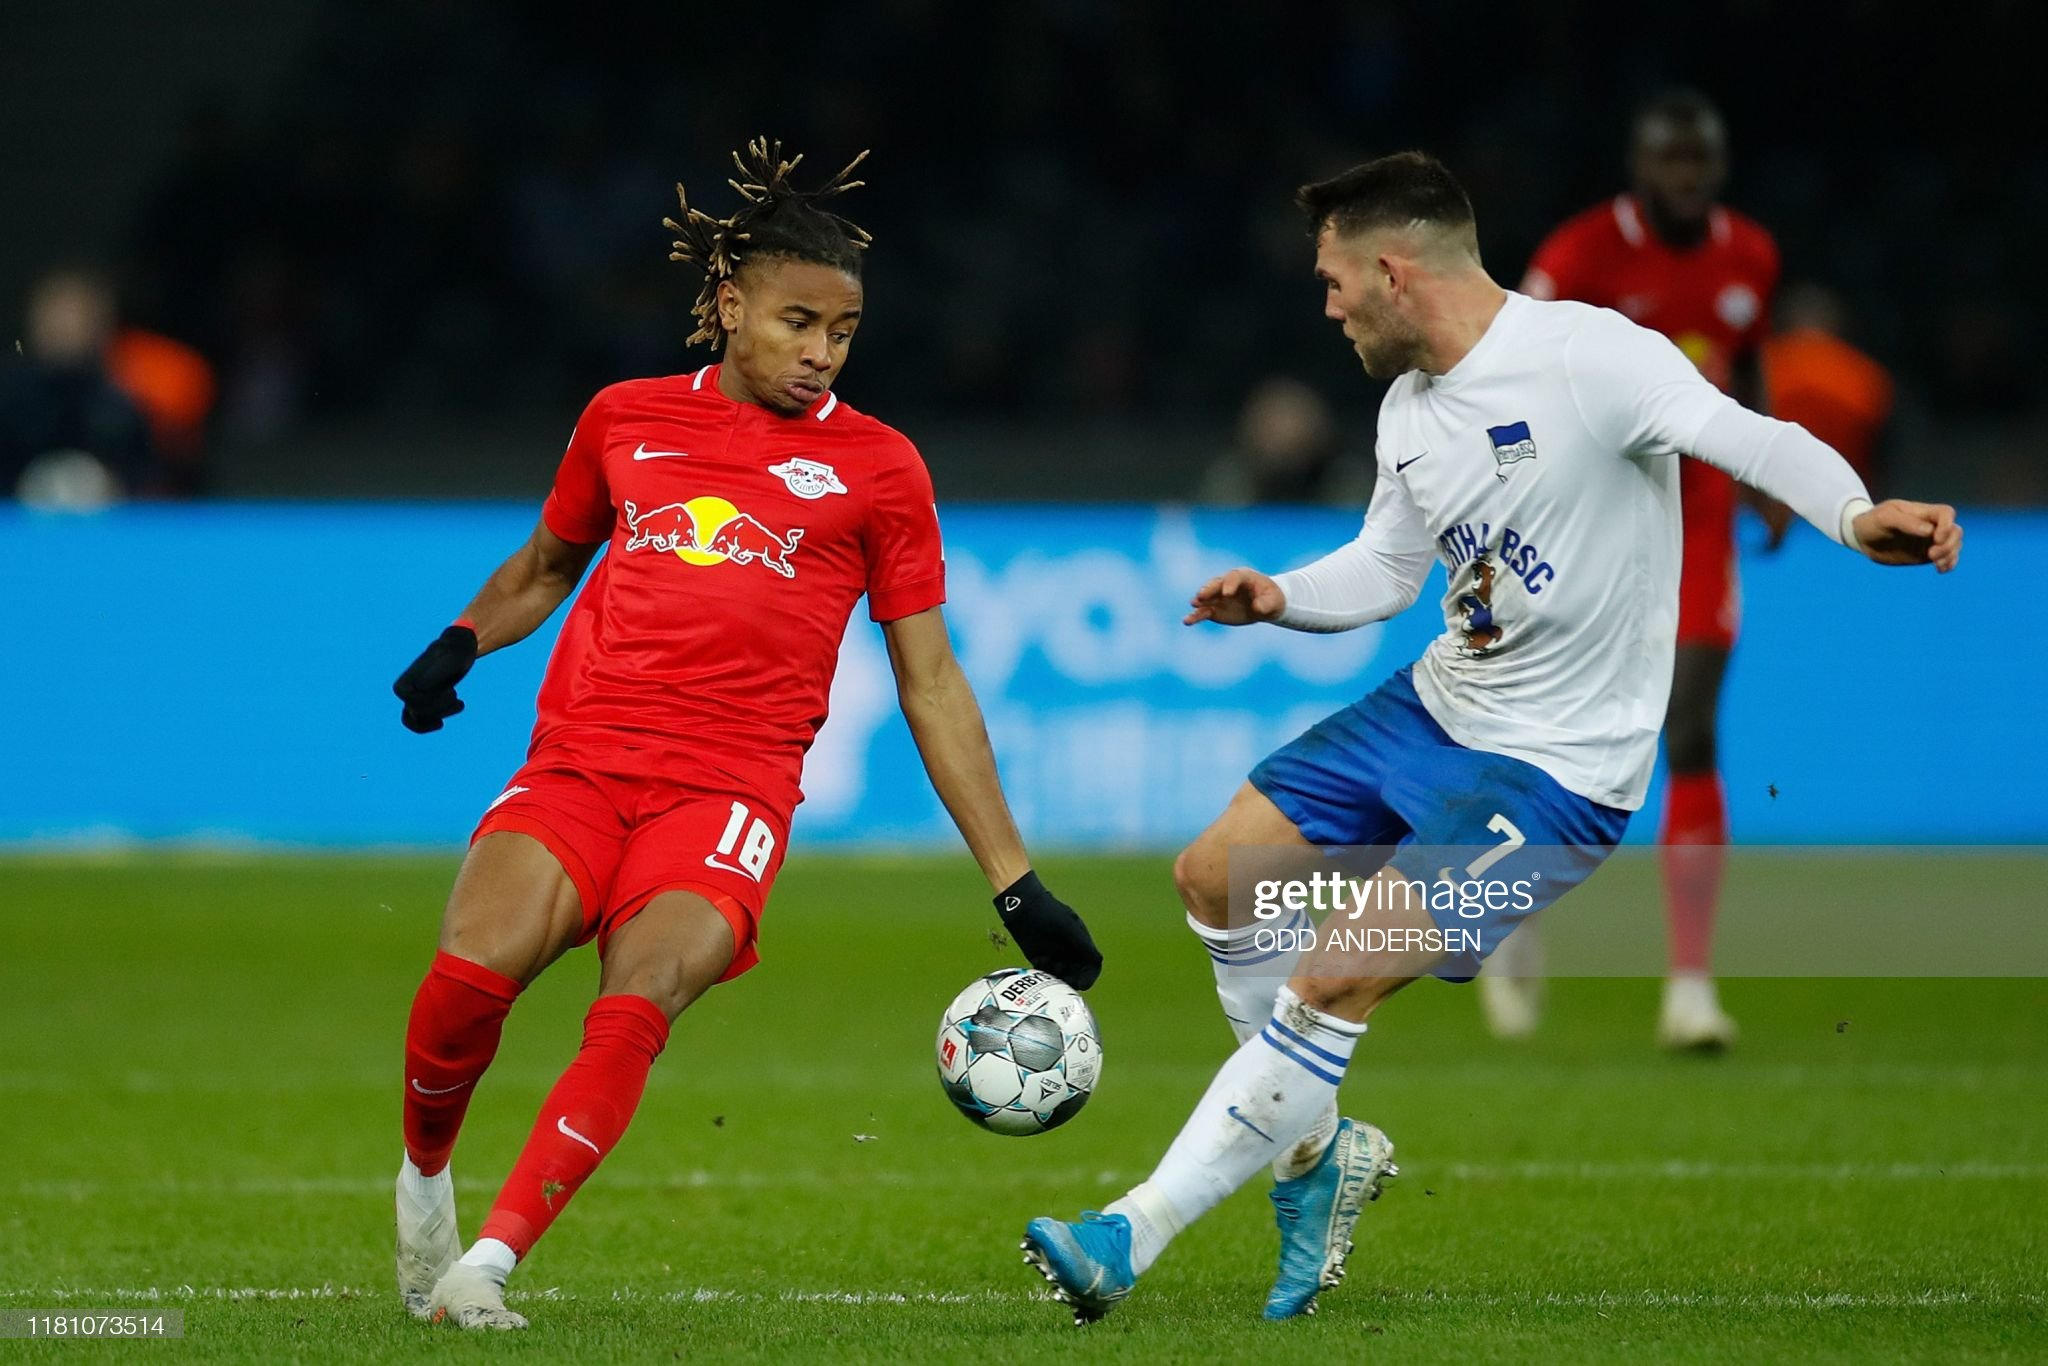 RB Leipzig v Hertha Berlin Preview, prediction and odds